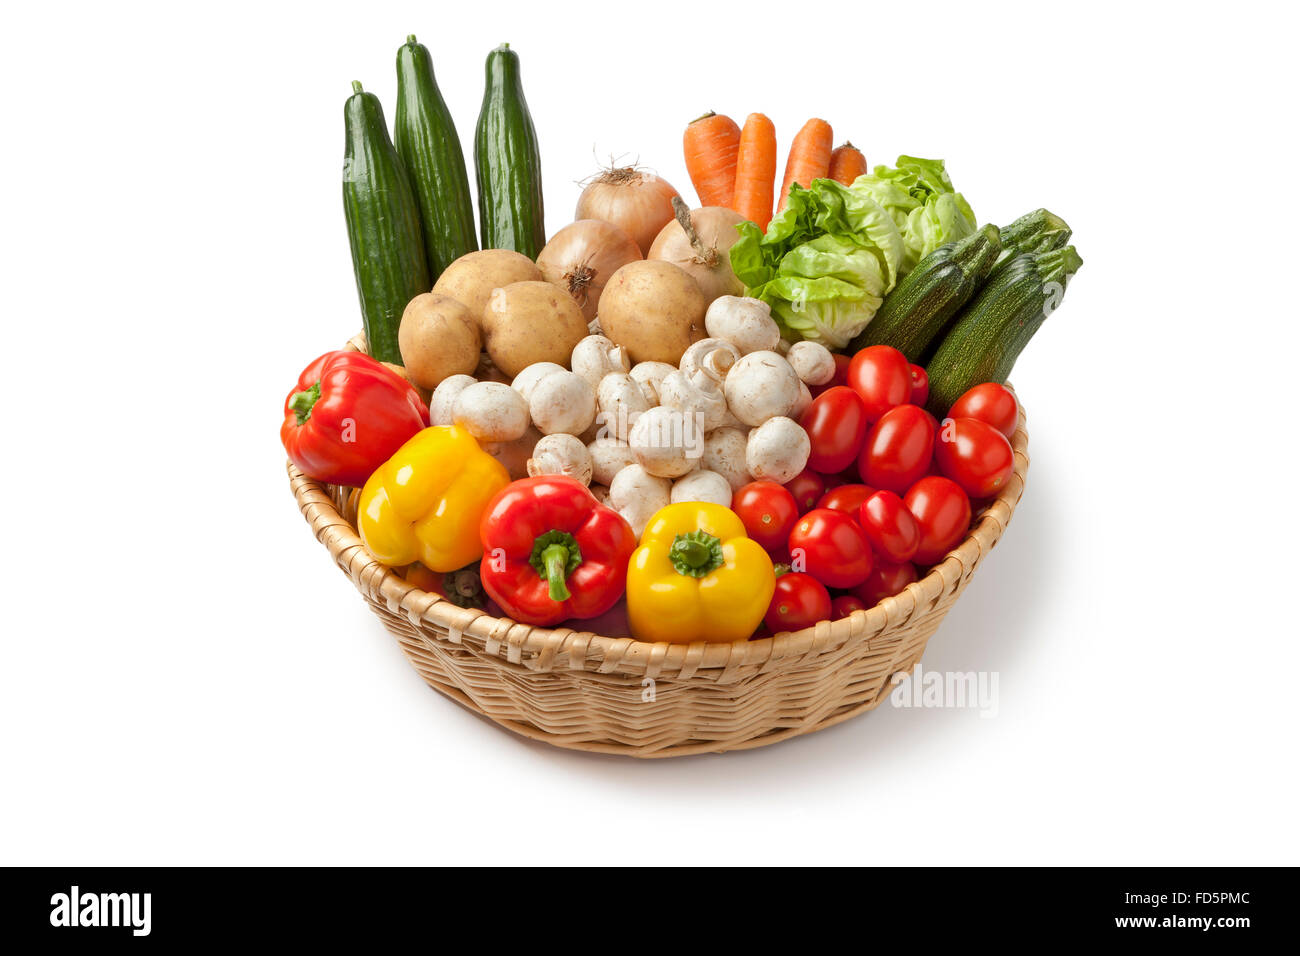 Basket with fresh vegetables on white background - Stock Image